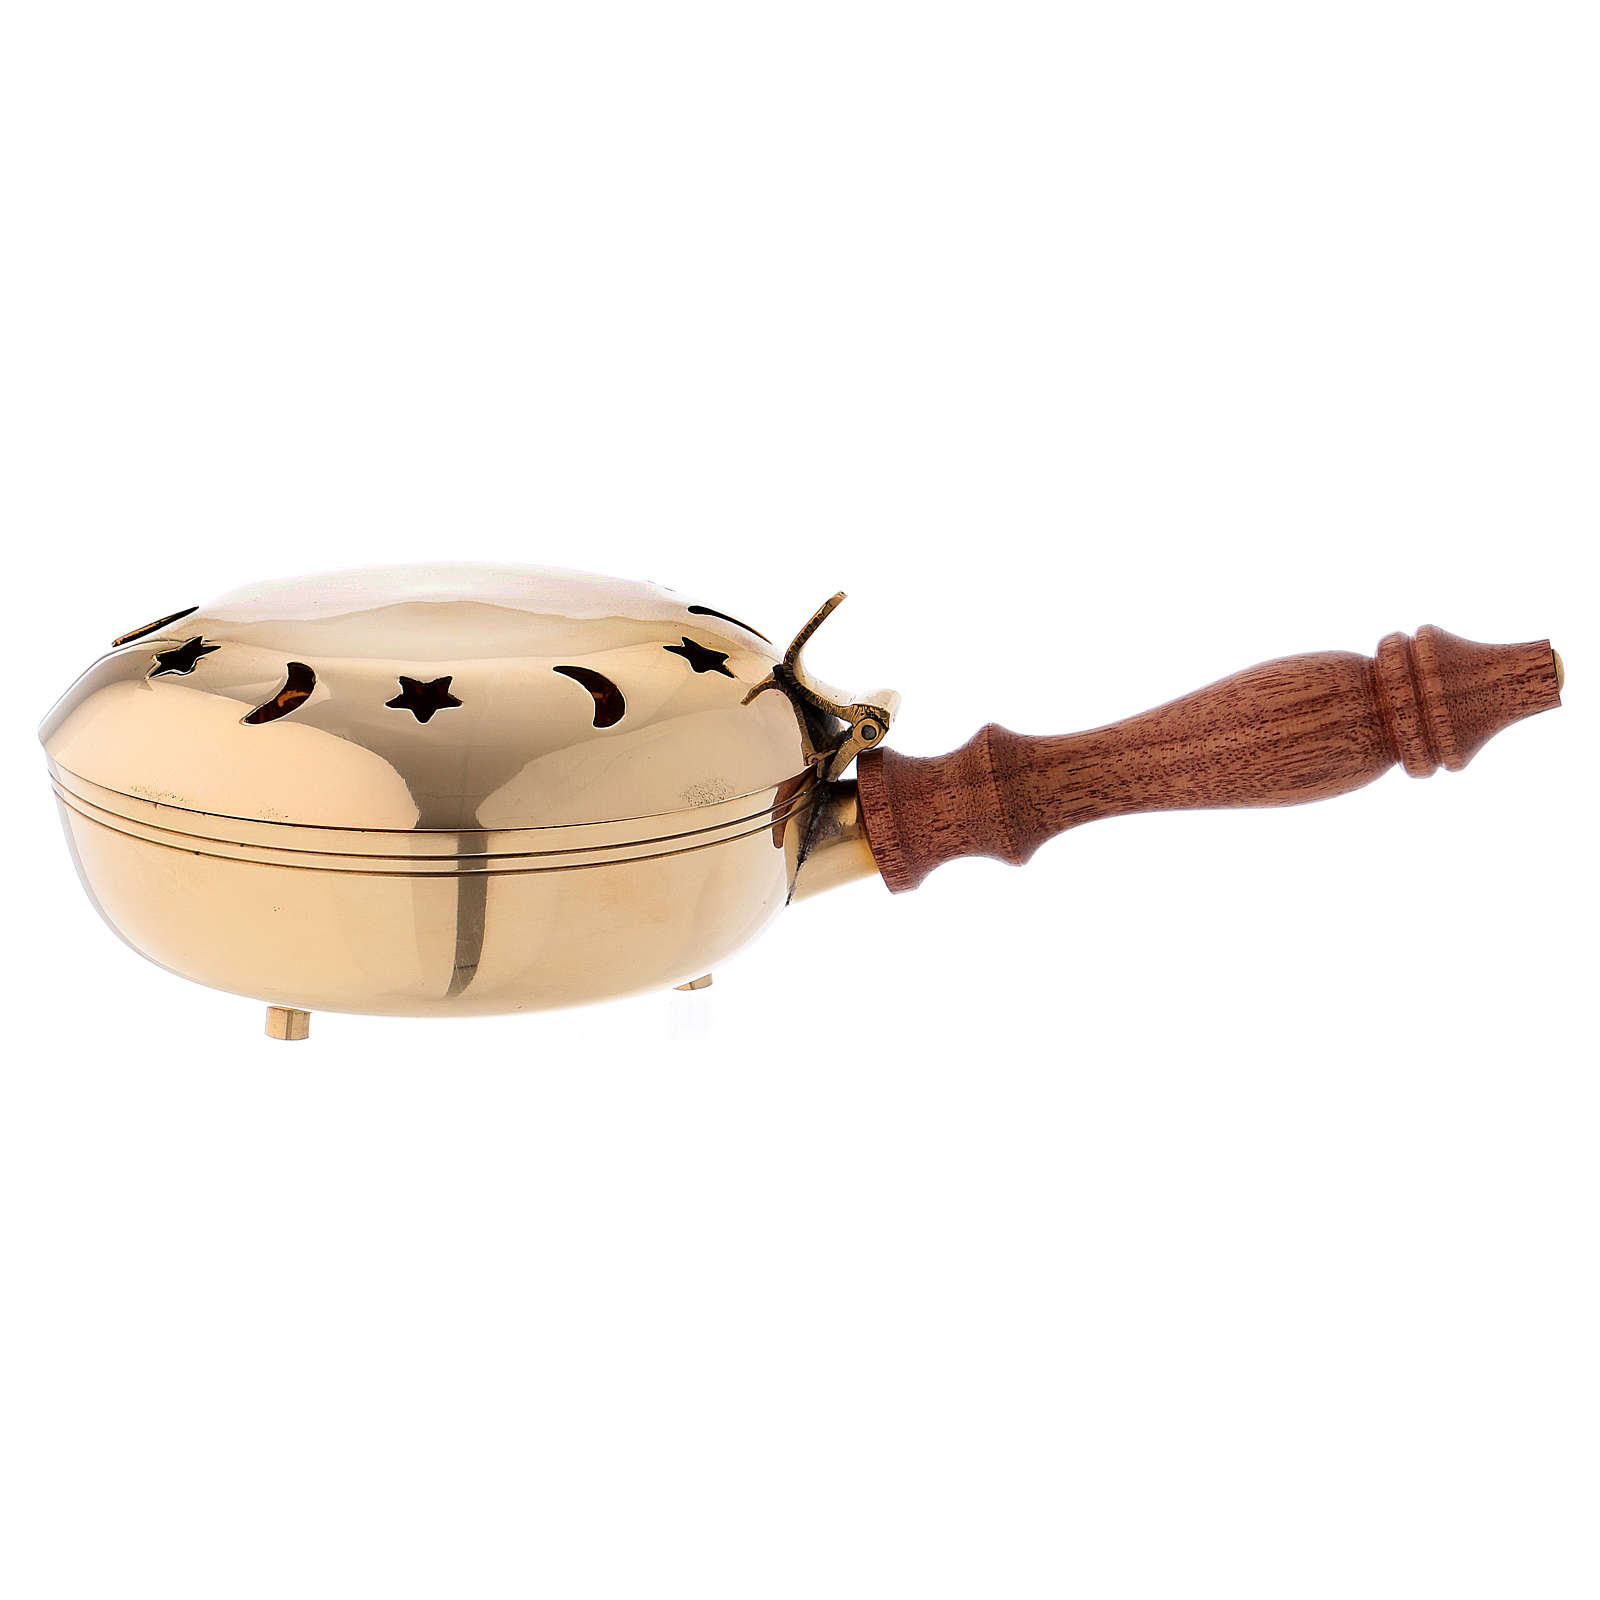 Incense burner in solid golden brass with wooden handle 3